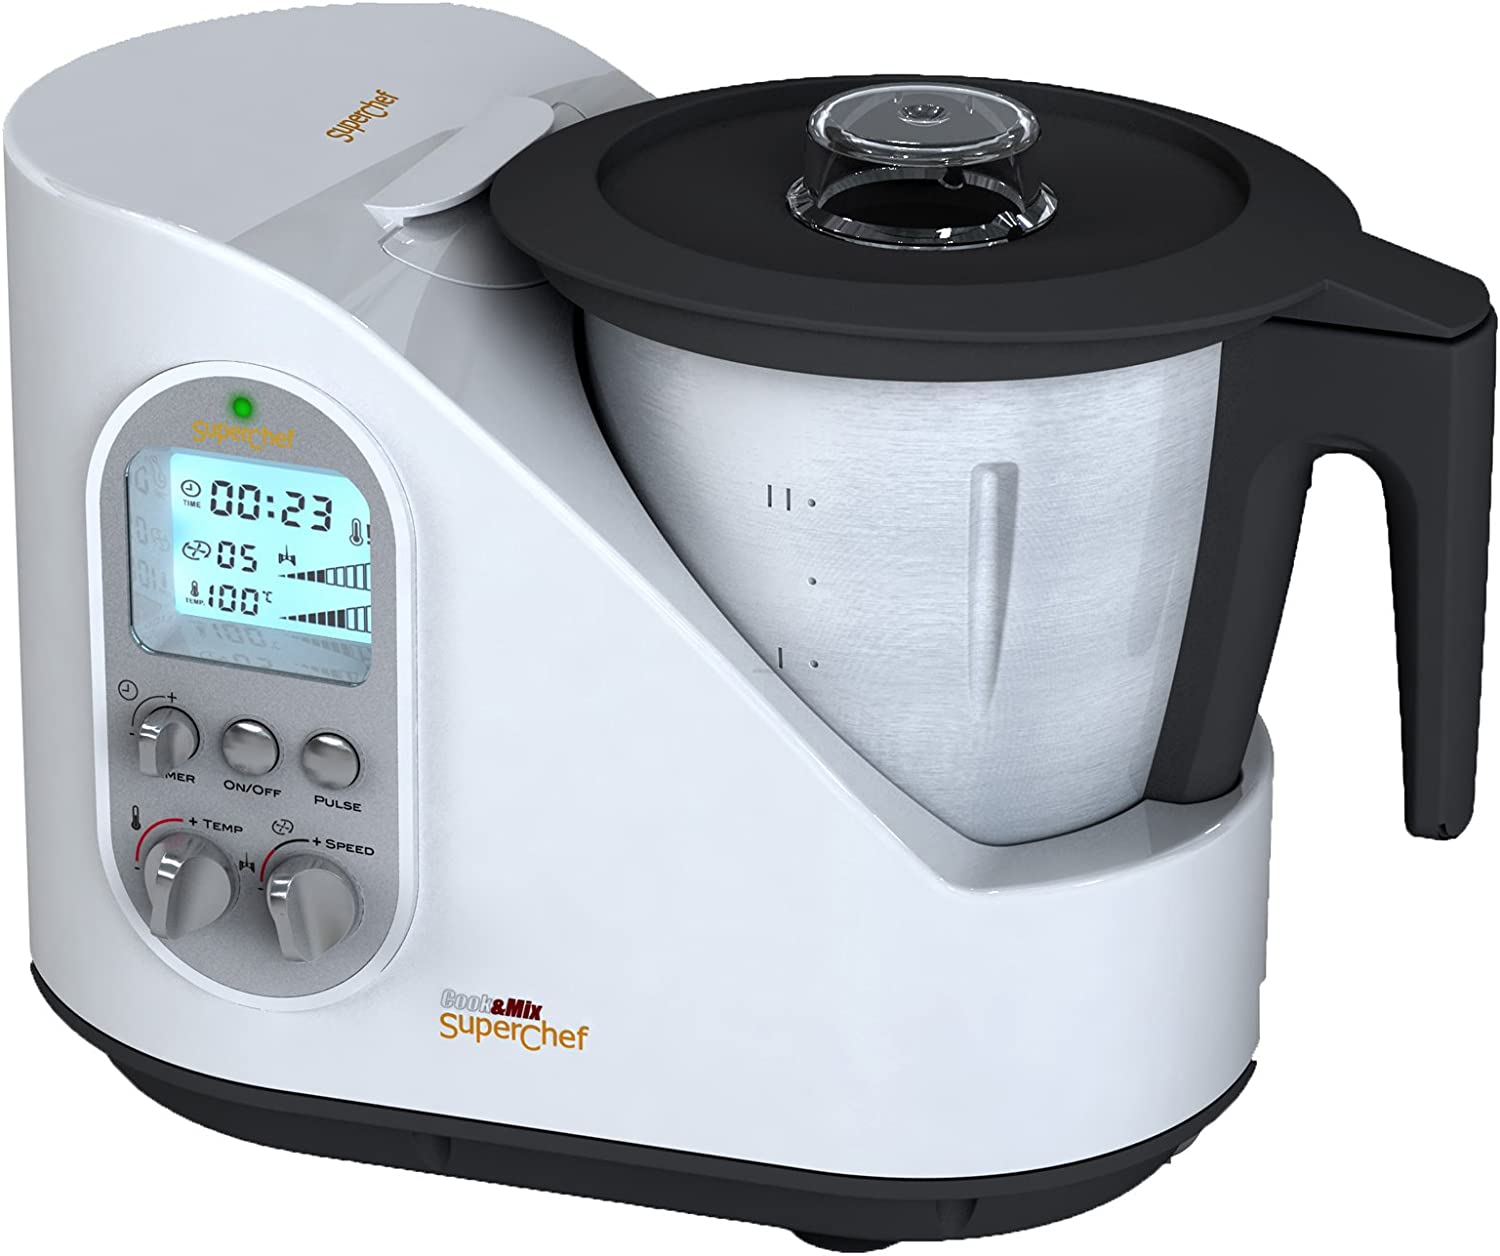 Superchef Cook and Mix - Robot de cocina: Amazon.es: Hogar